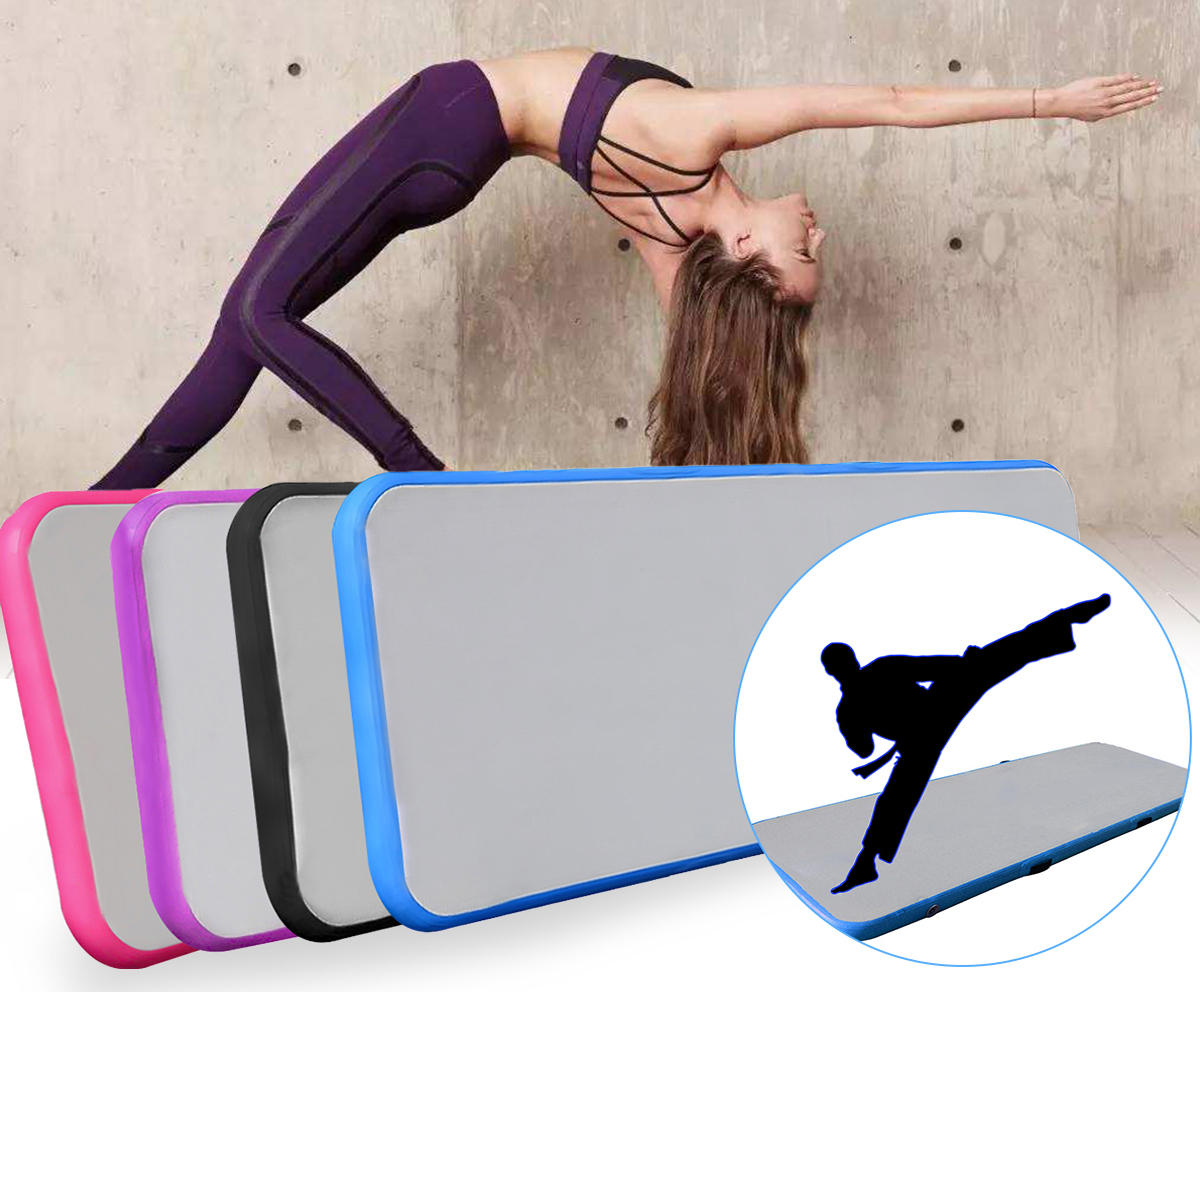 118x19x3.93inch Inflatable Air Track Tumbling Gymnastics Practice Training Pad Gym Mat